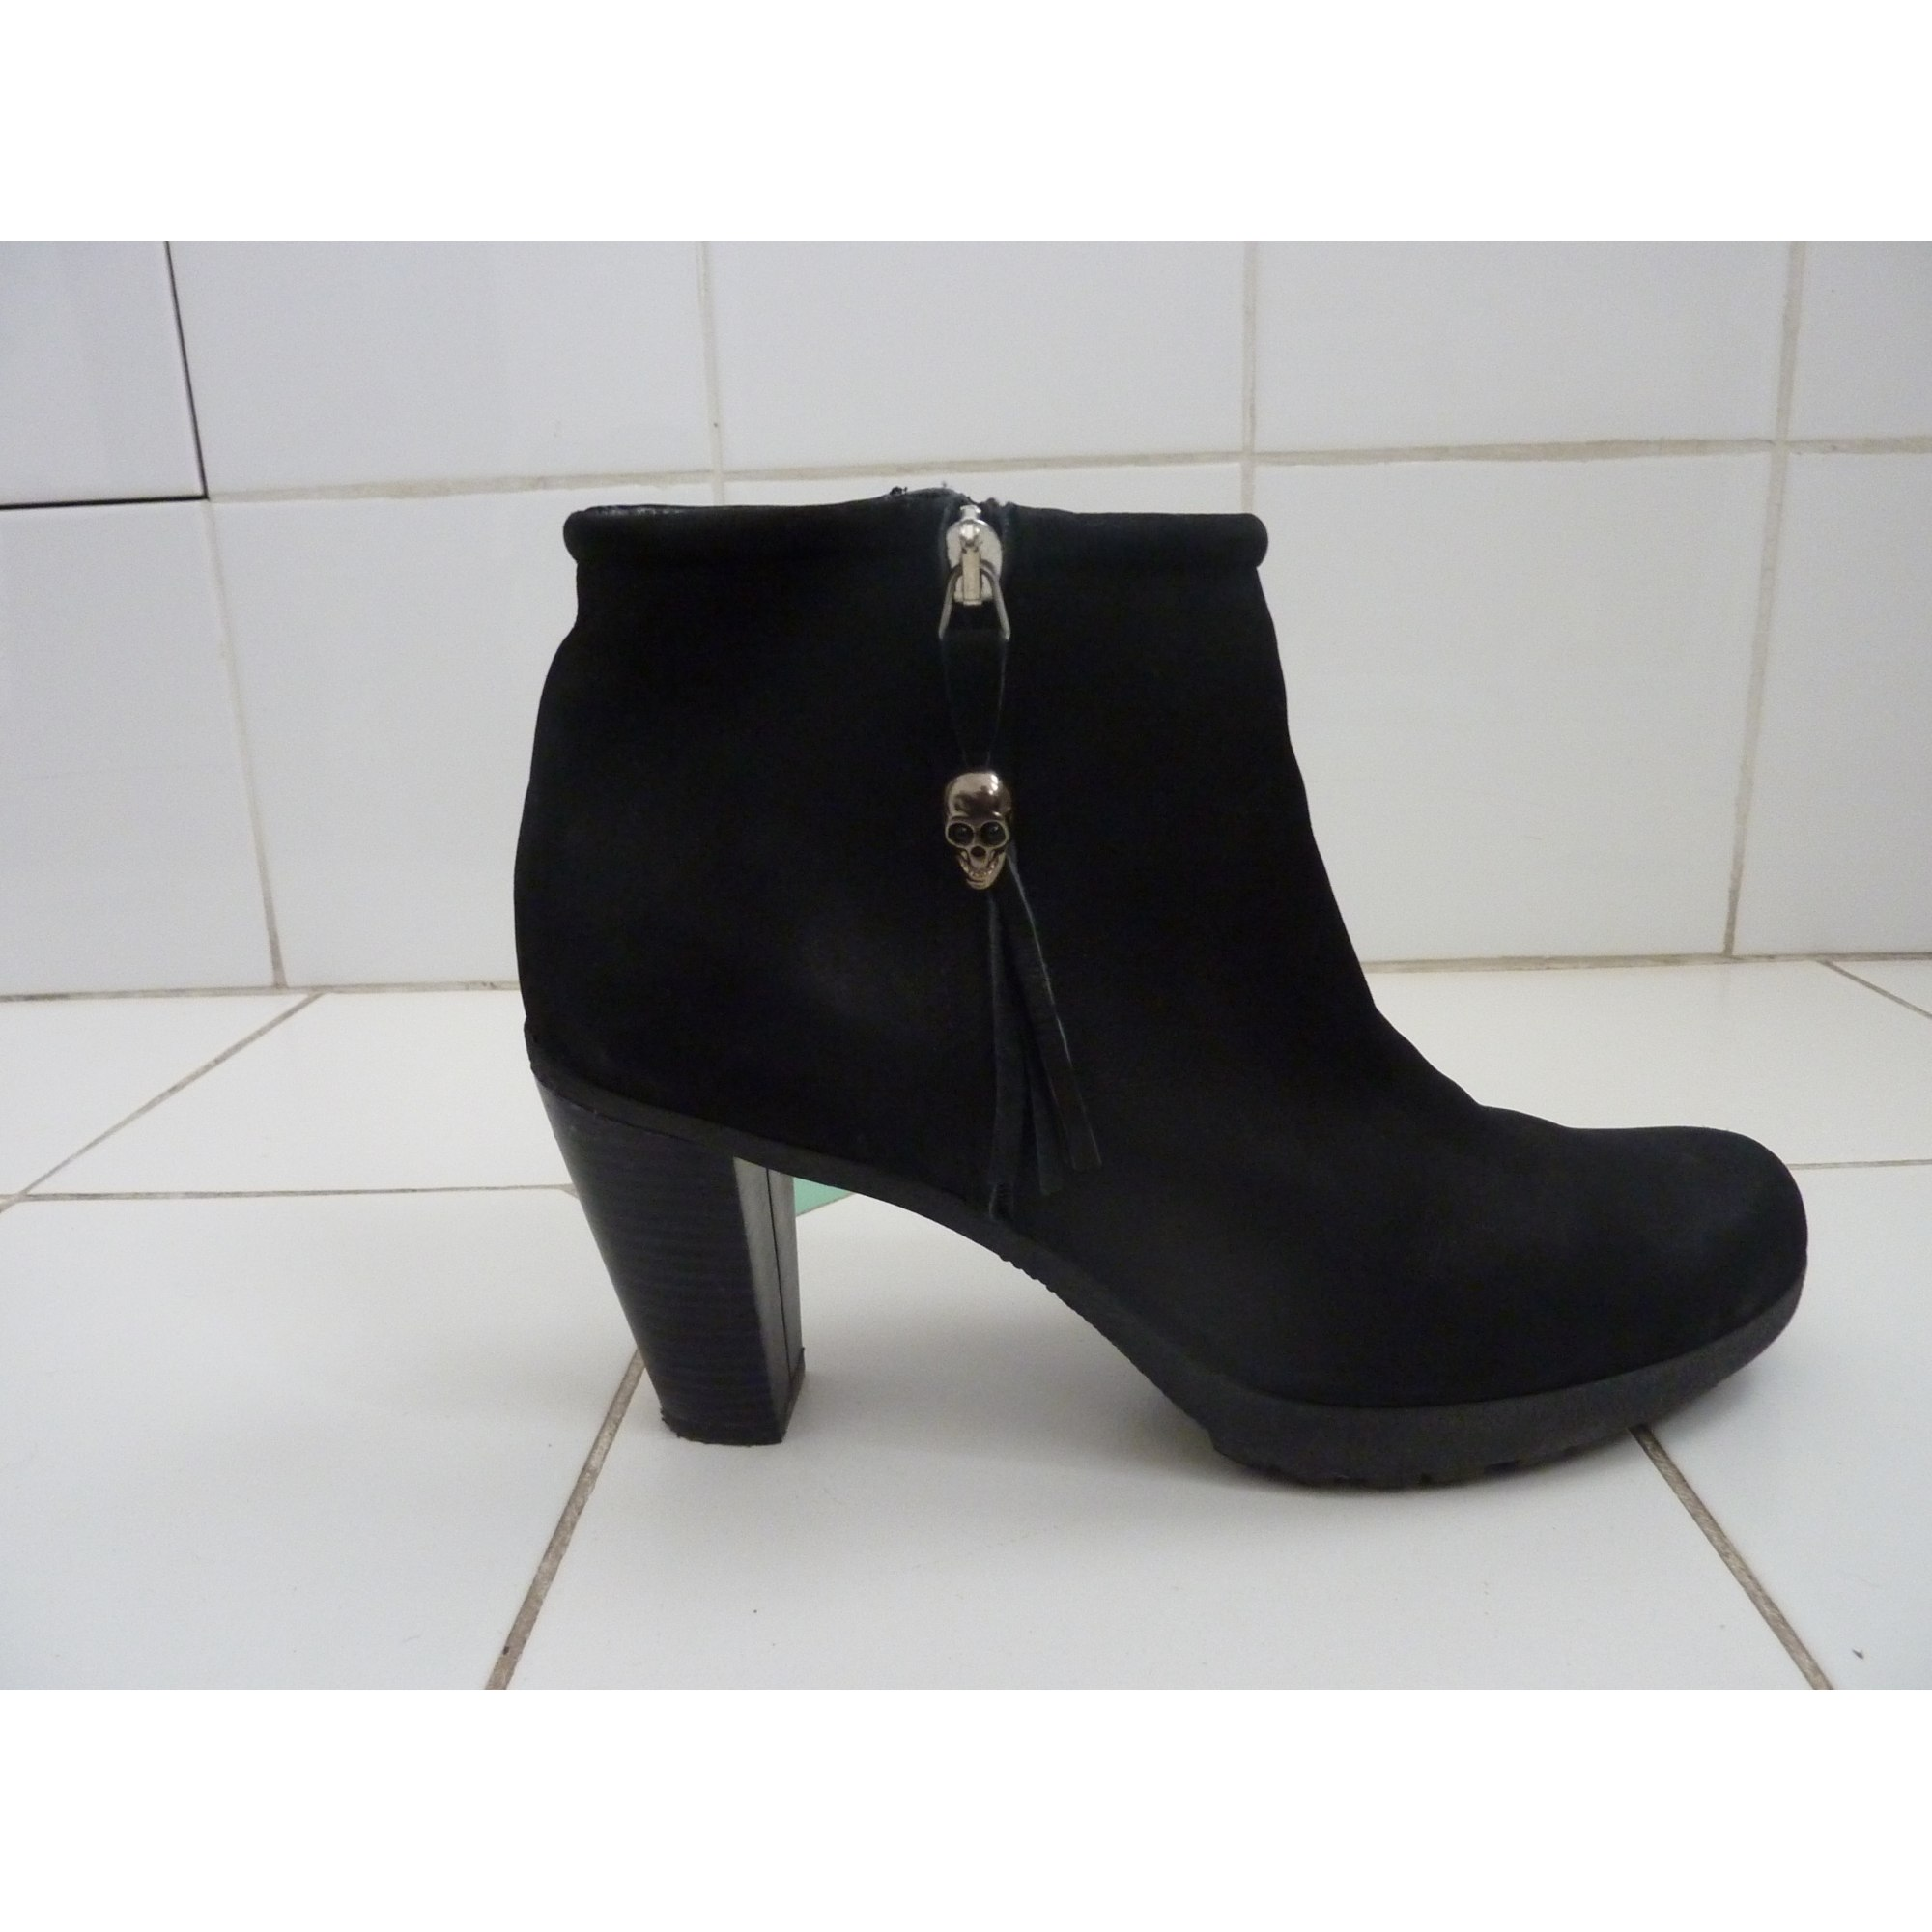 Bottines & low boots à talons REQINS cuir noir 39